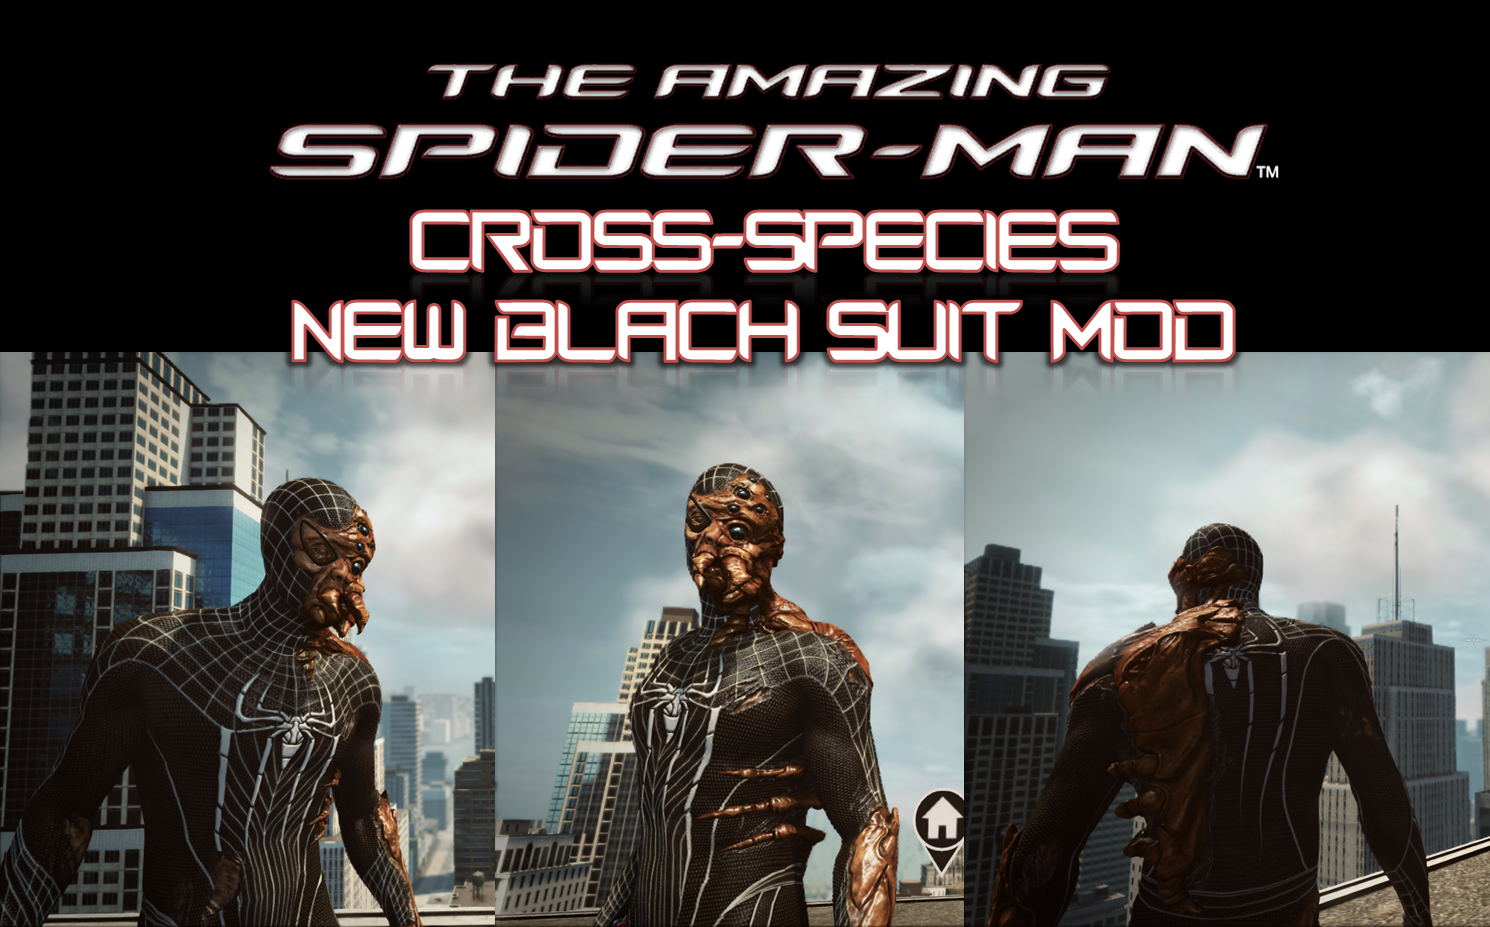 Cross-Species New Black Suit MOD by sanadsk5 on DeviantArt